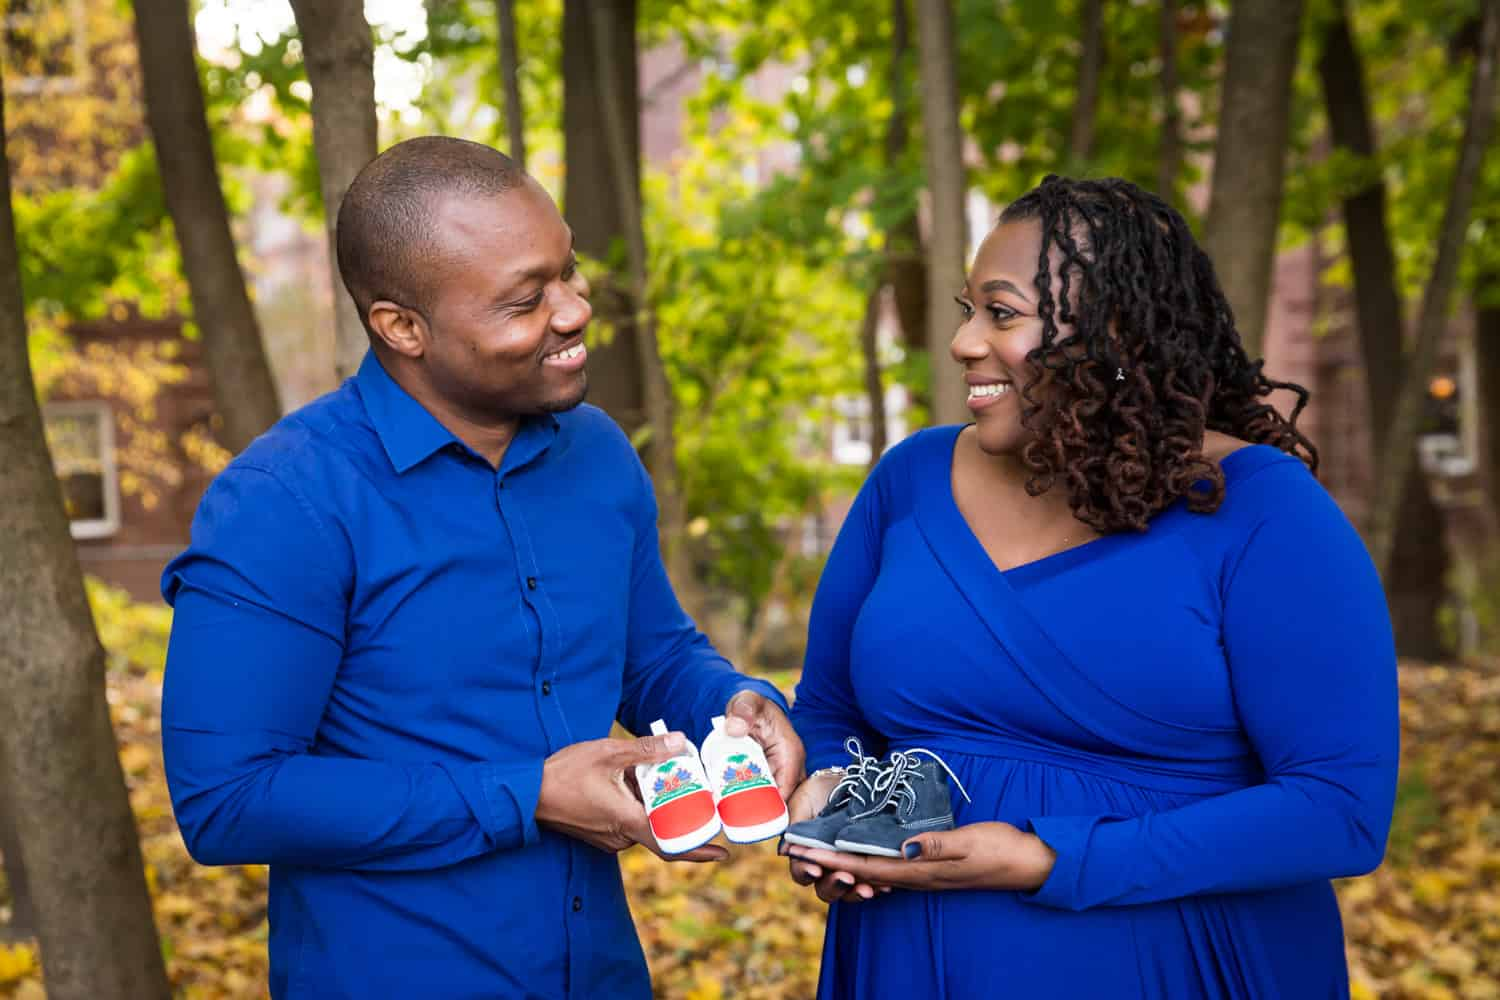 African American expecting couple each holding pair of baby shoes